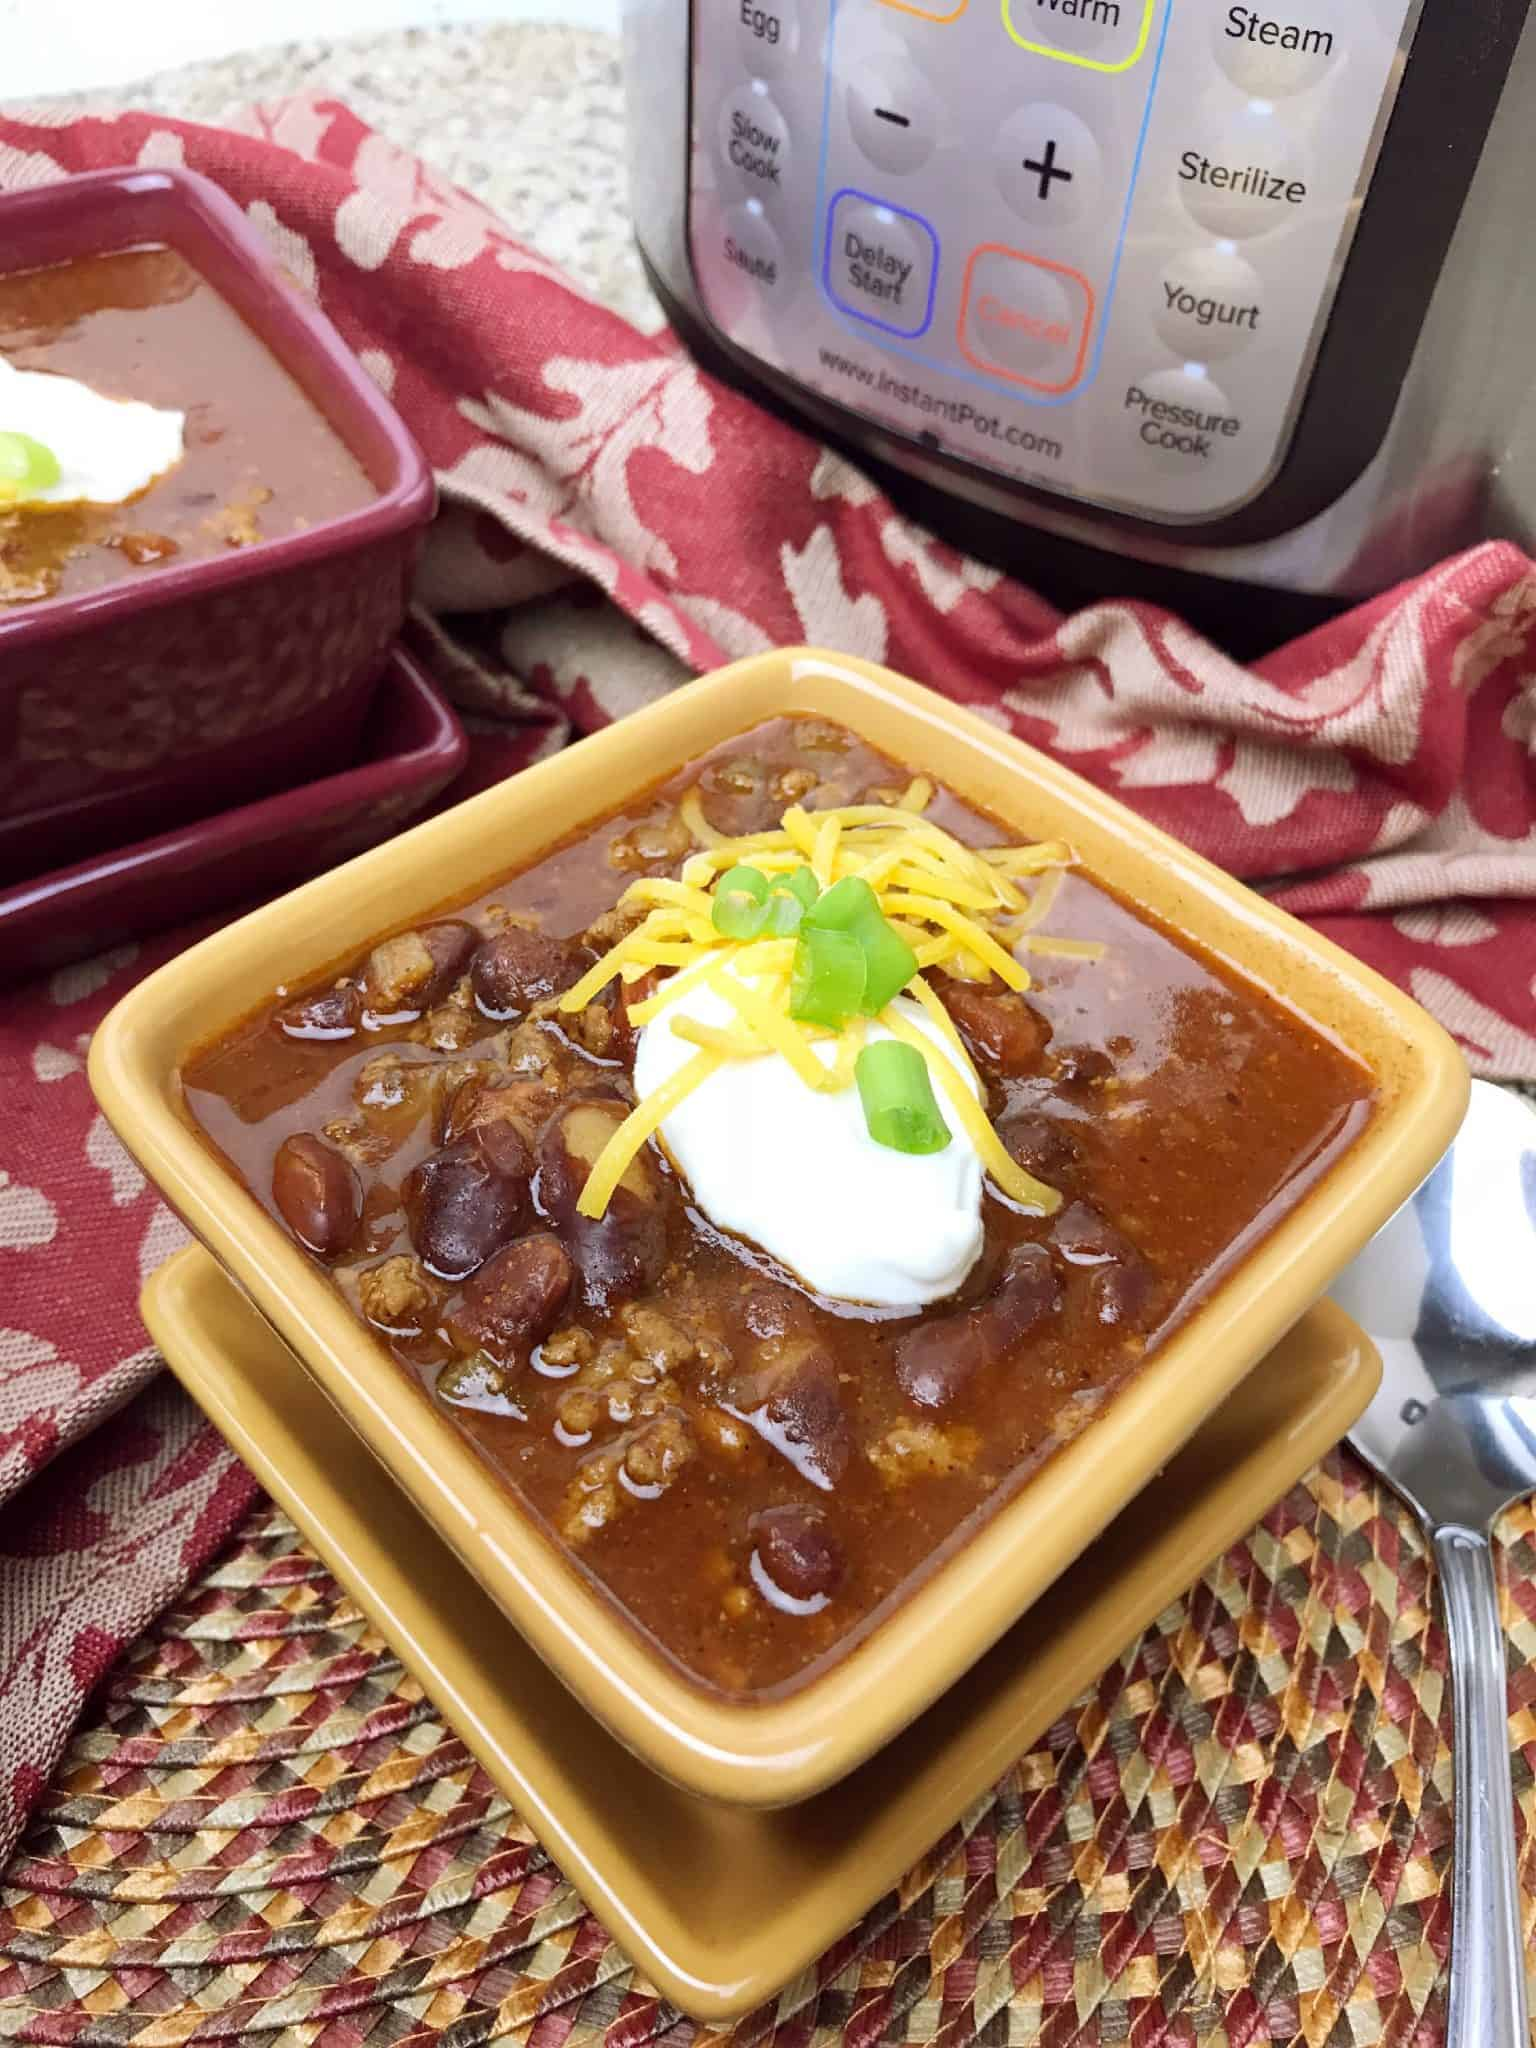 Instant Pot Chili is so delicious with a dollop of sour cream, cheese, and onions.